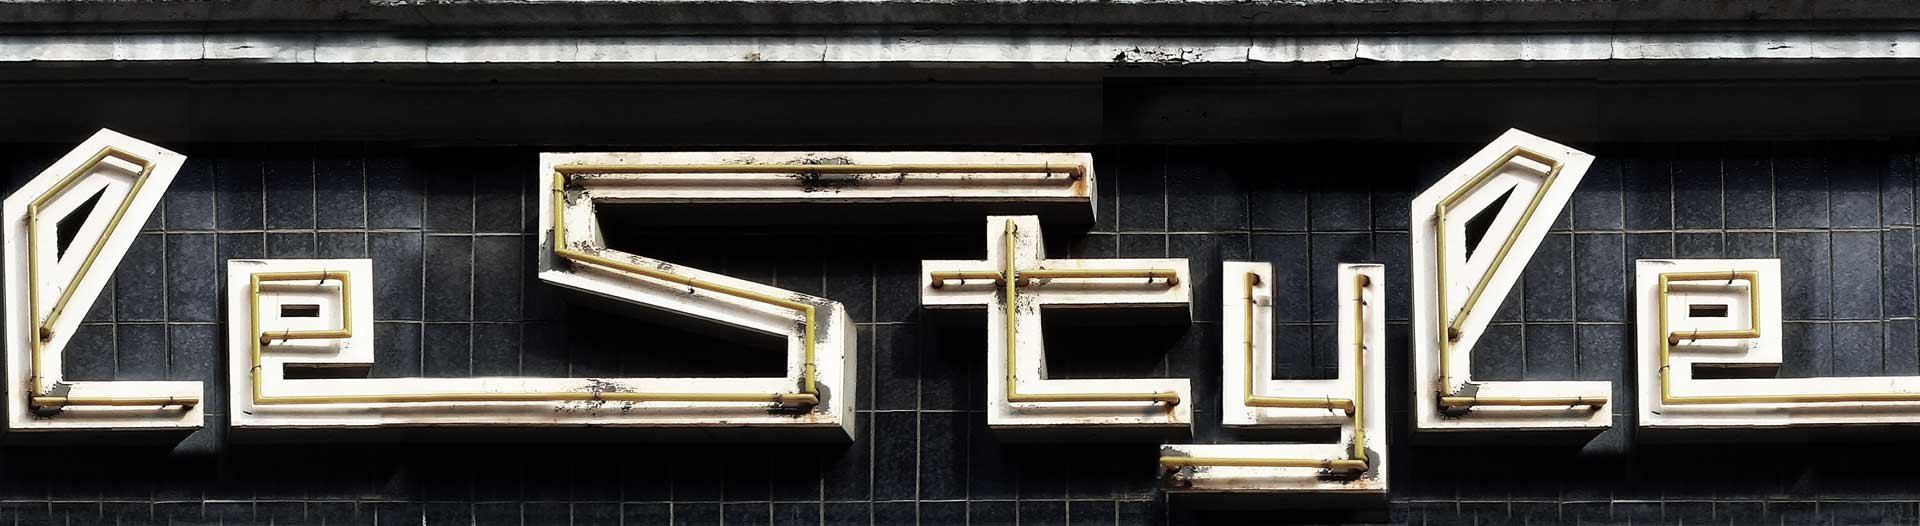 finding of the week: very stylish neon sign